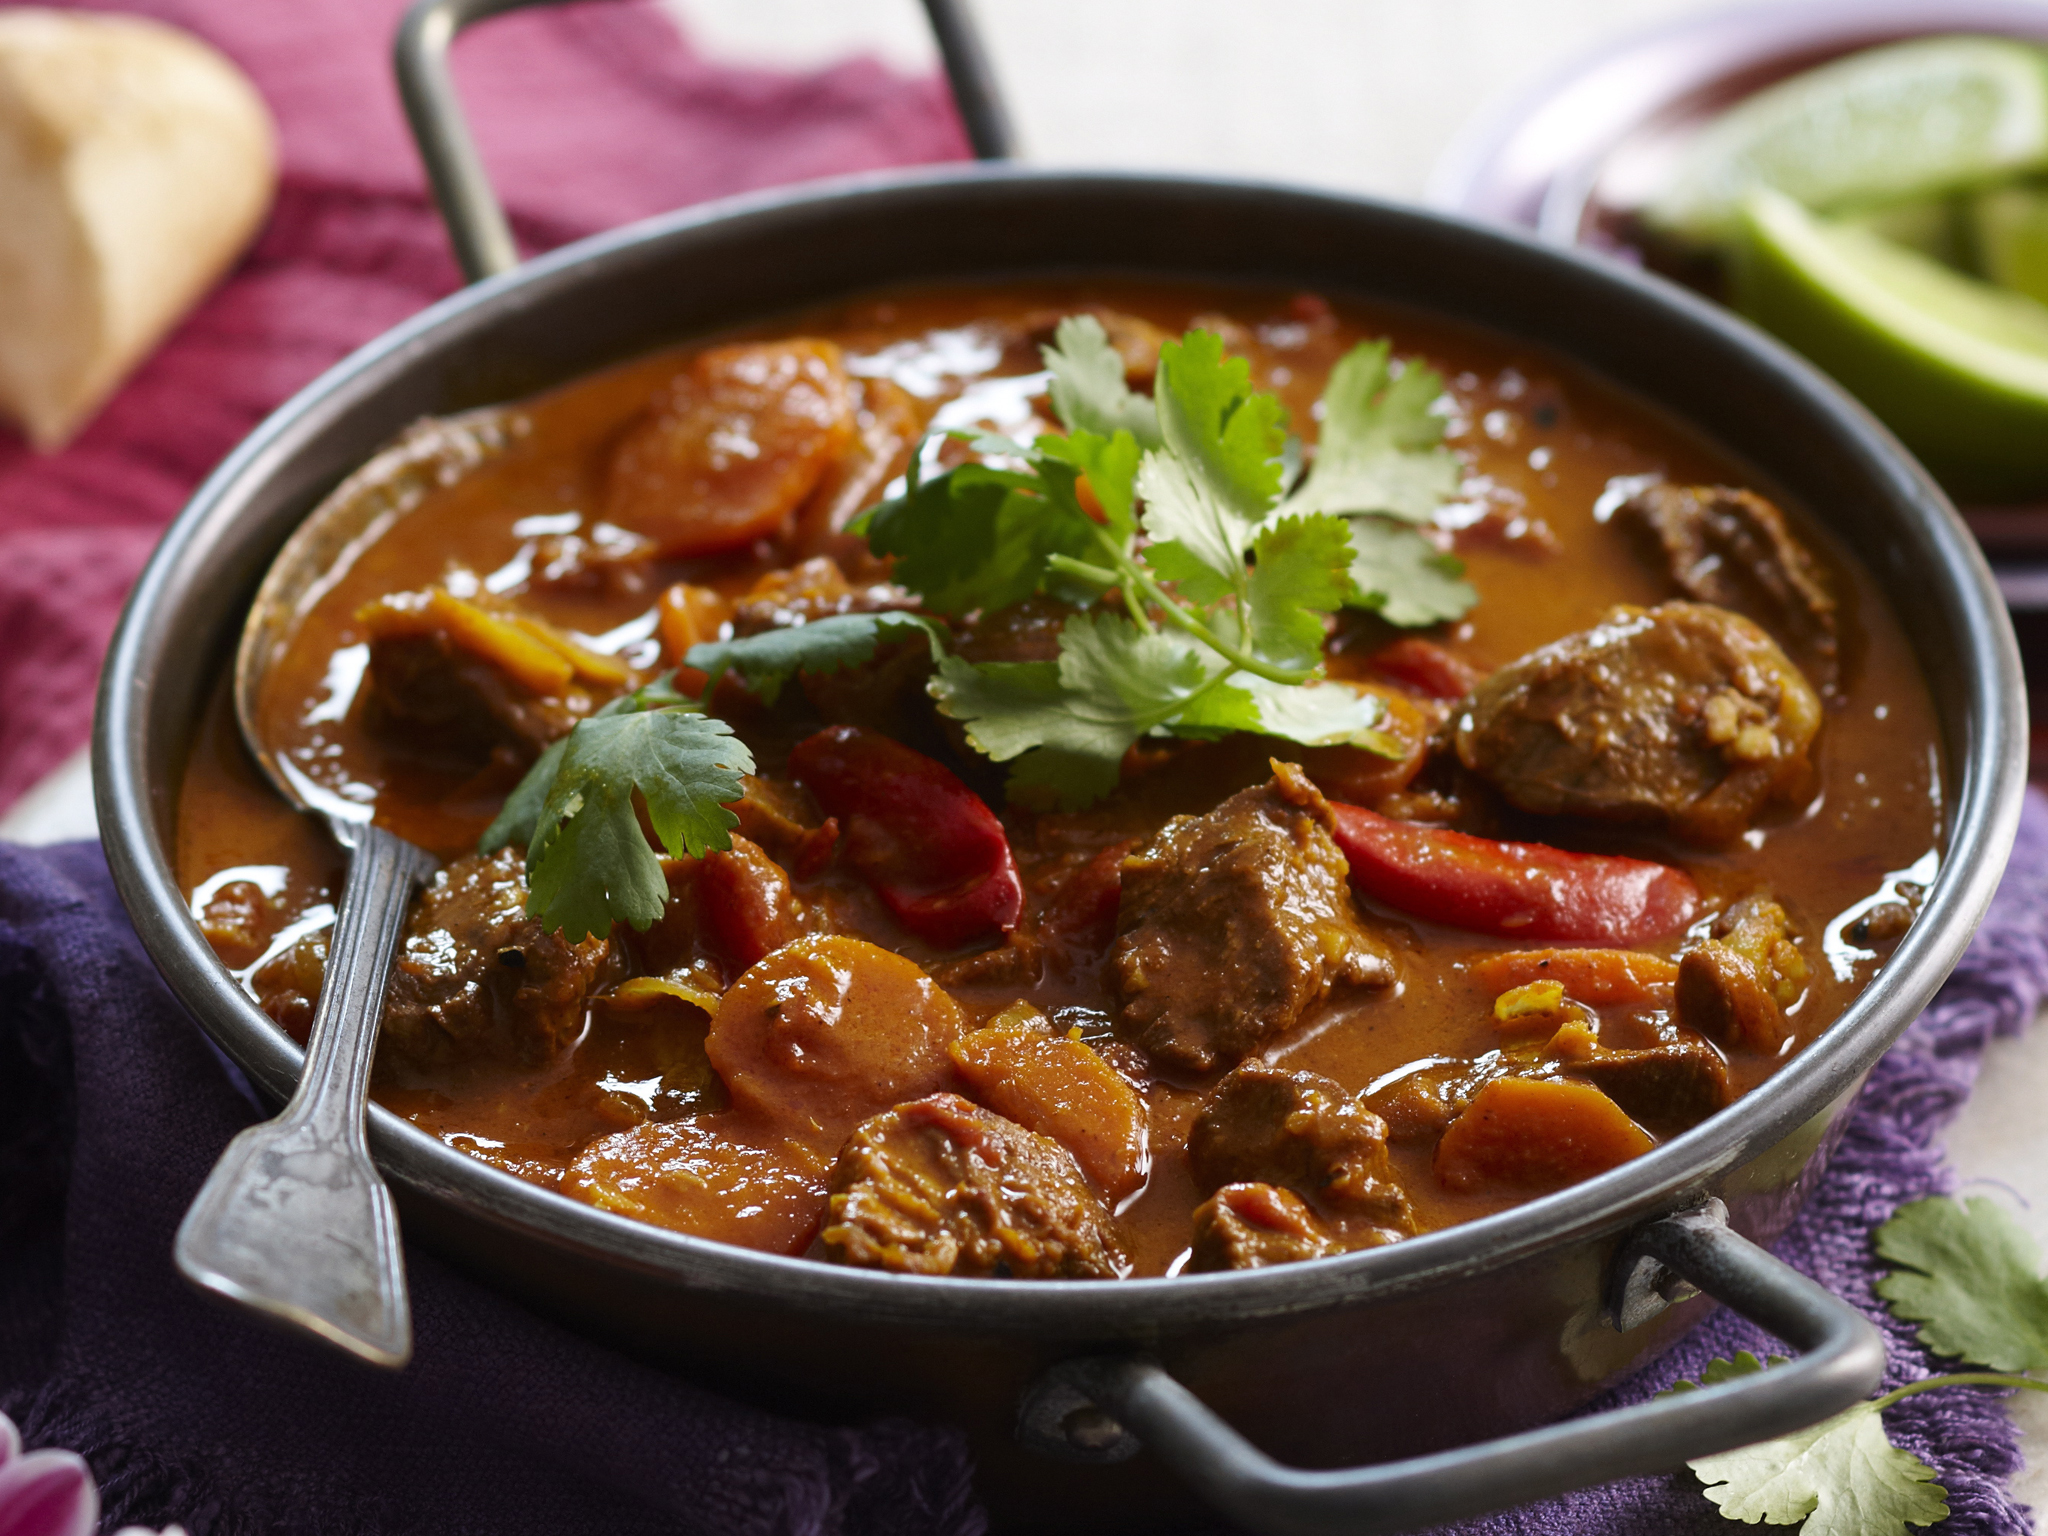 Everyday Food - A World of Curries Vietnamese Beef Curry